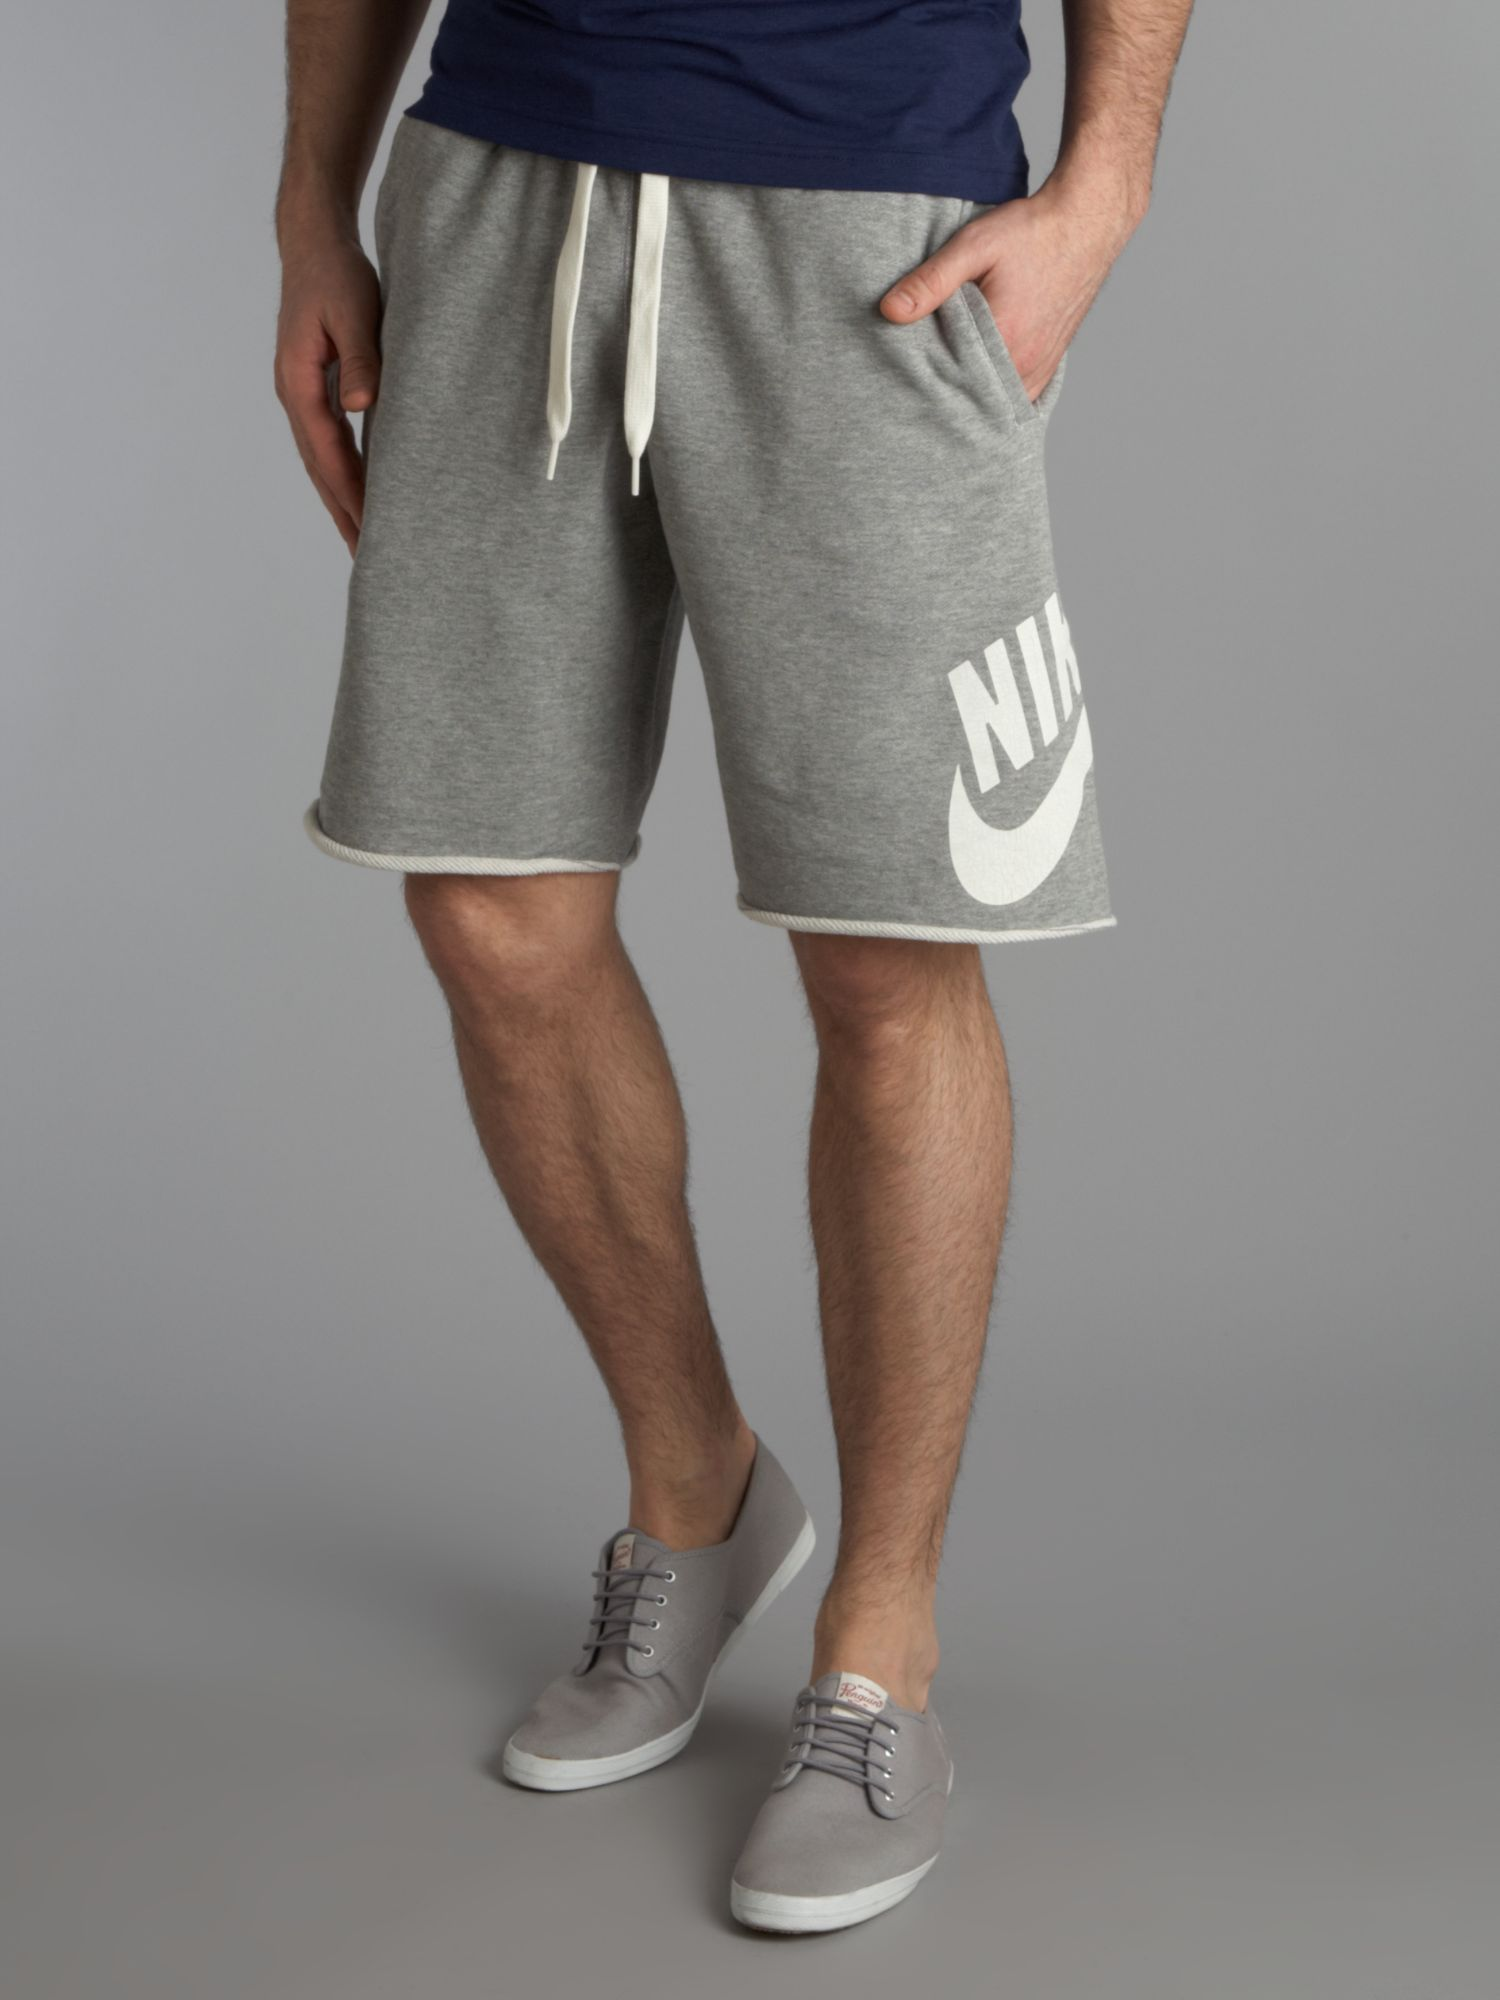 Nike Classic Sweat Shorts in Gray for Men